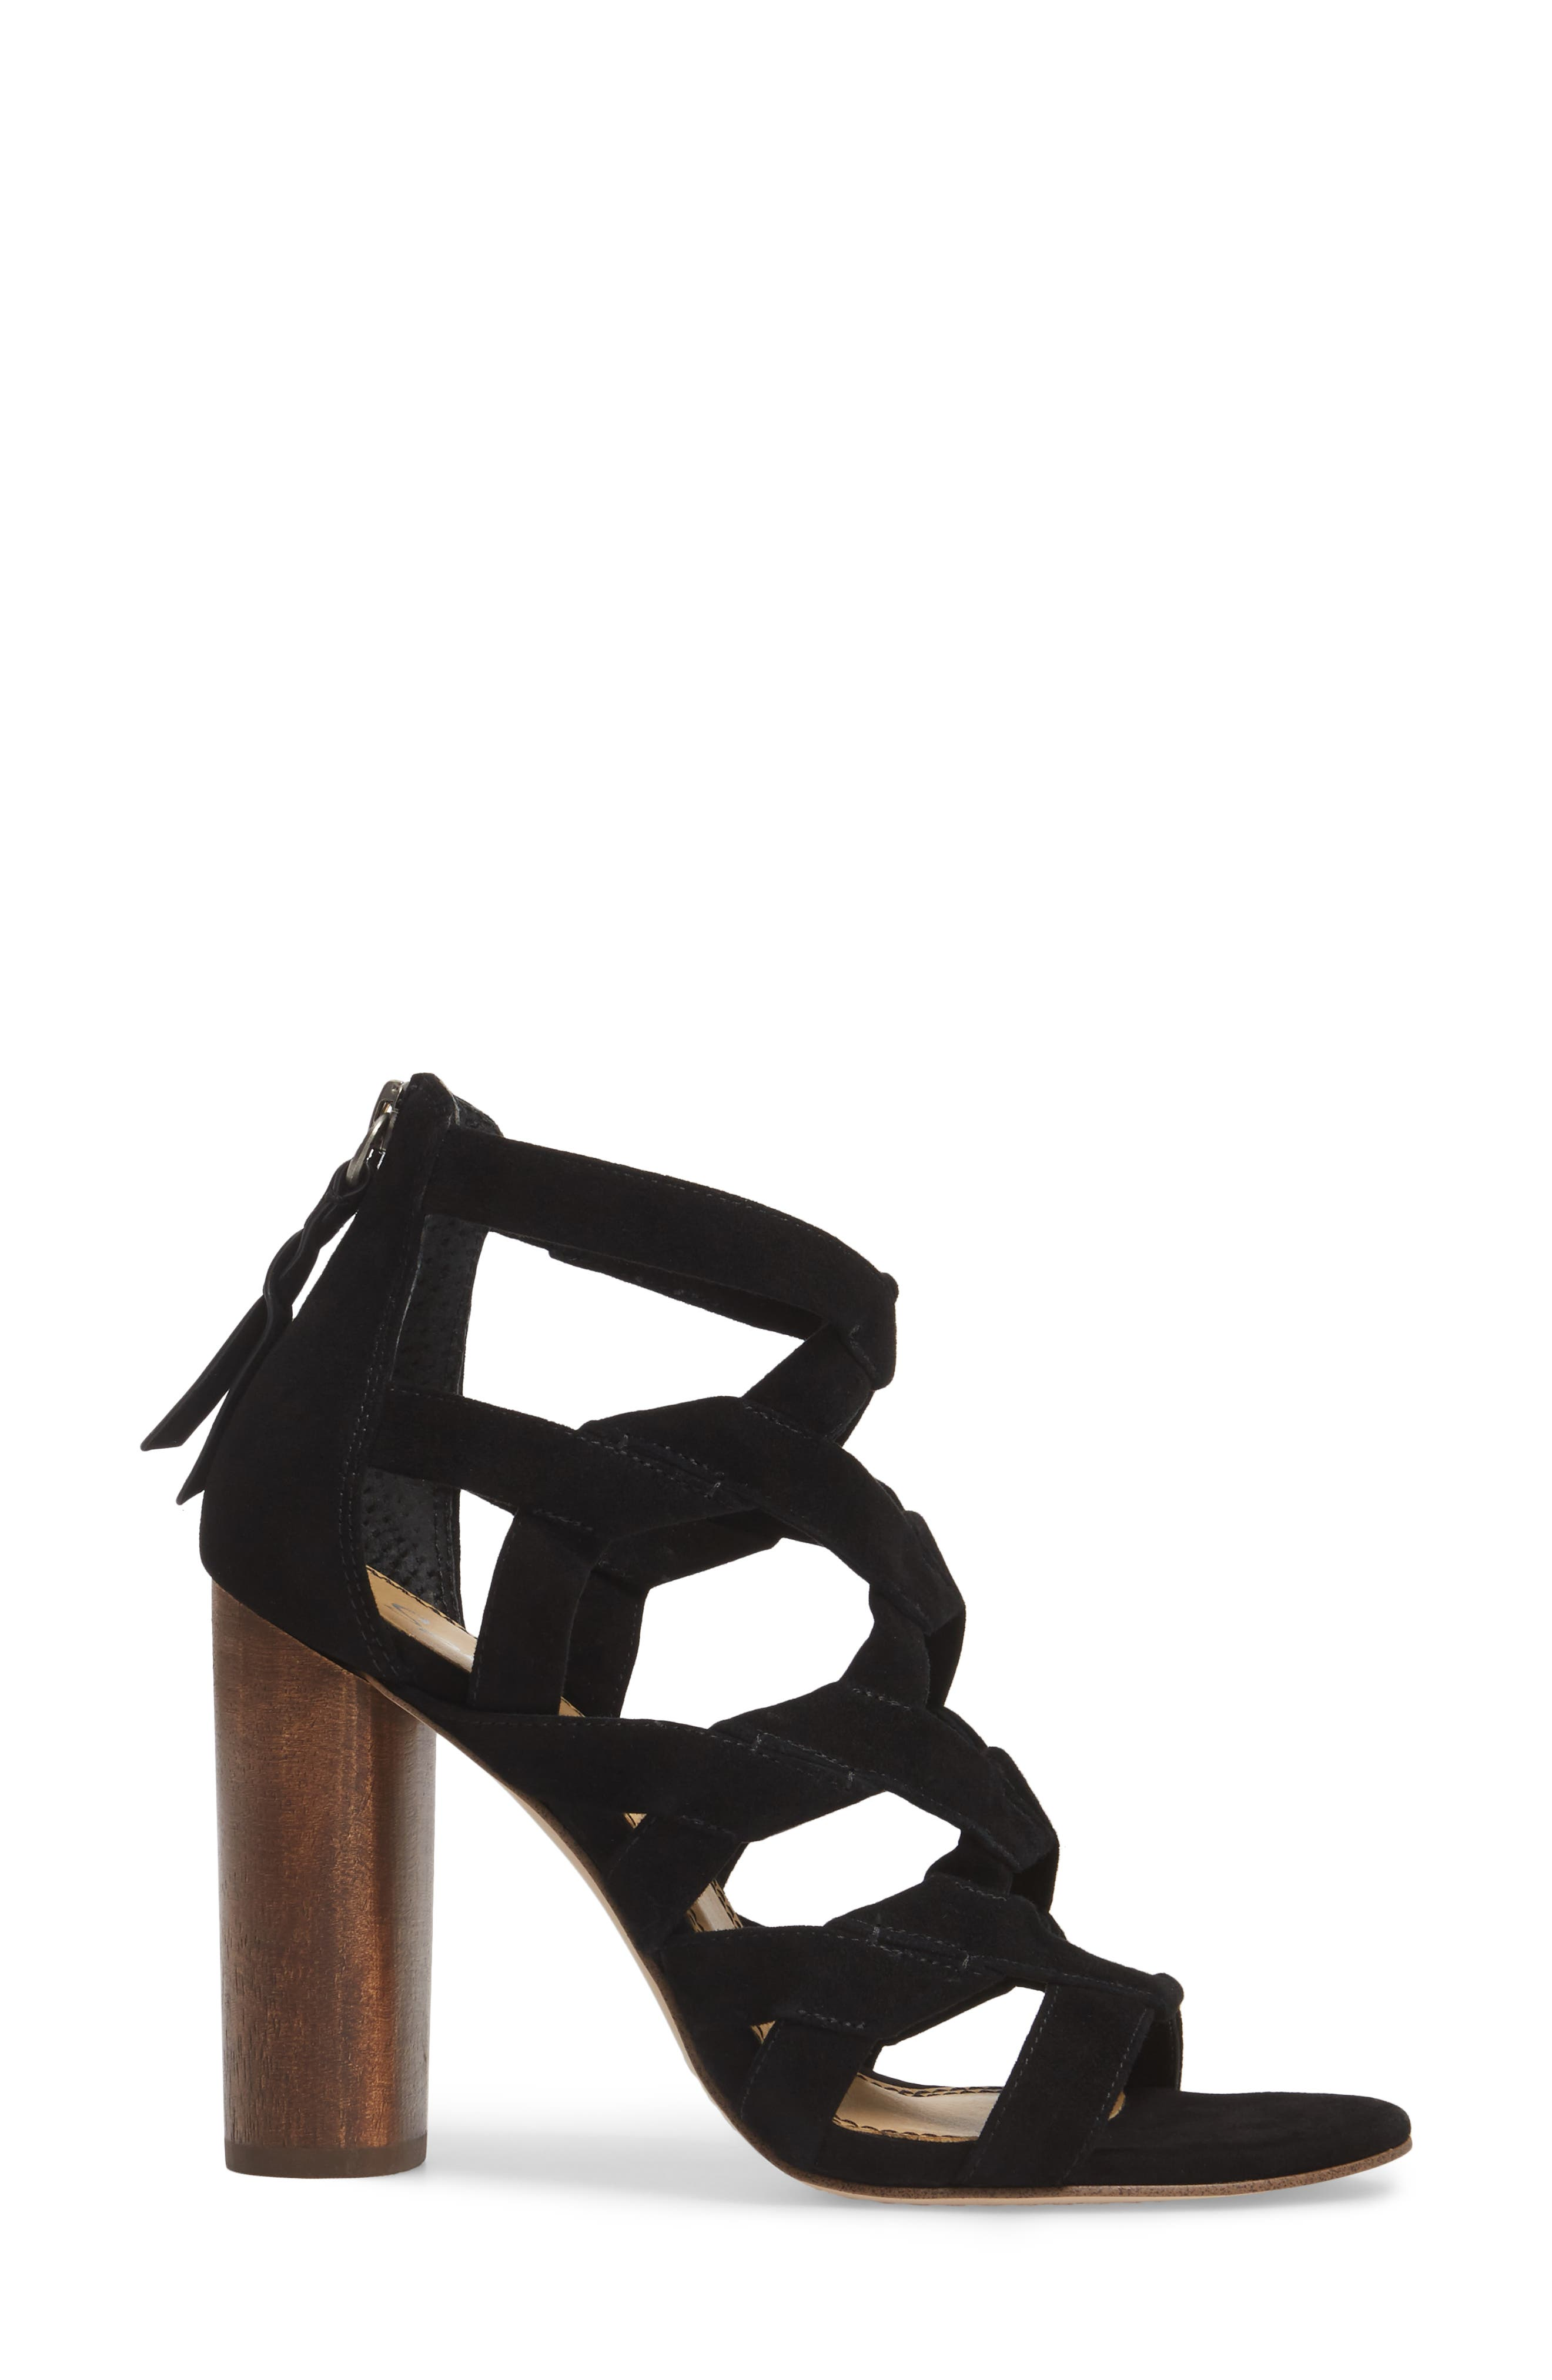 Bartlett Angled Cage Sandal,                             Alternate thumbnail 3, color,                             013